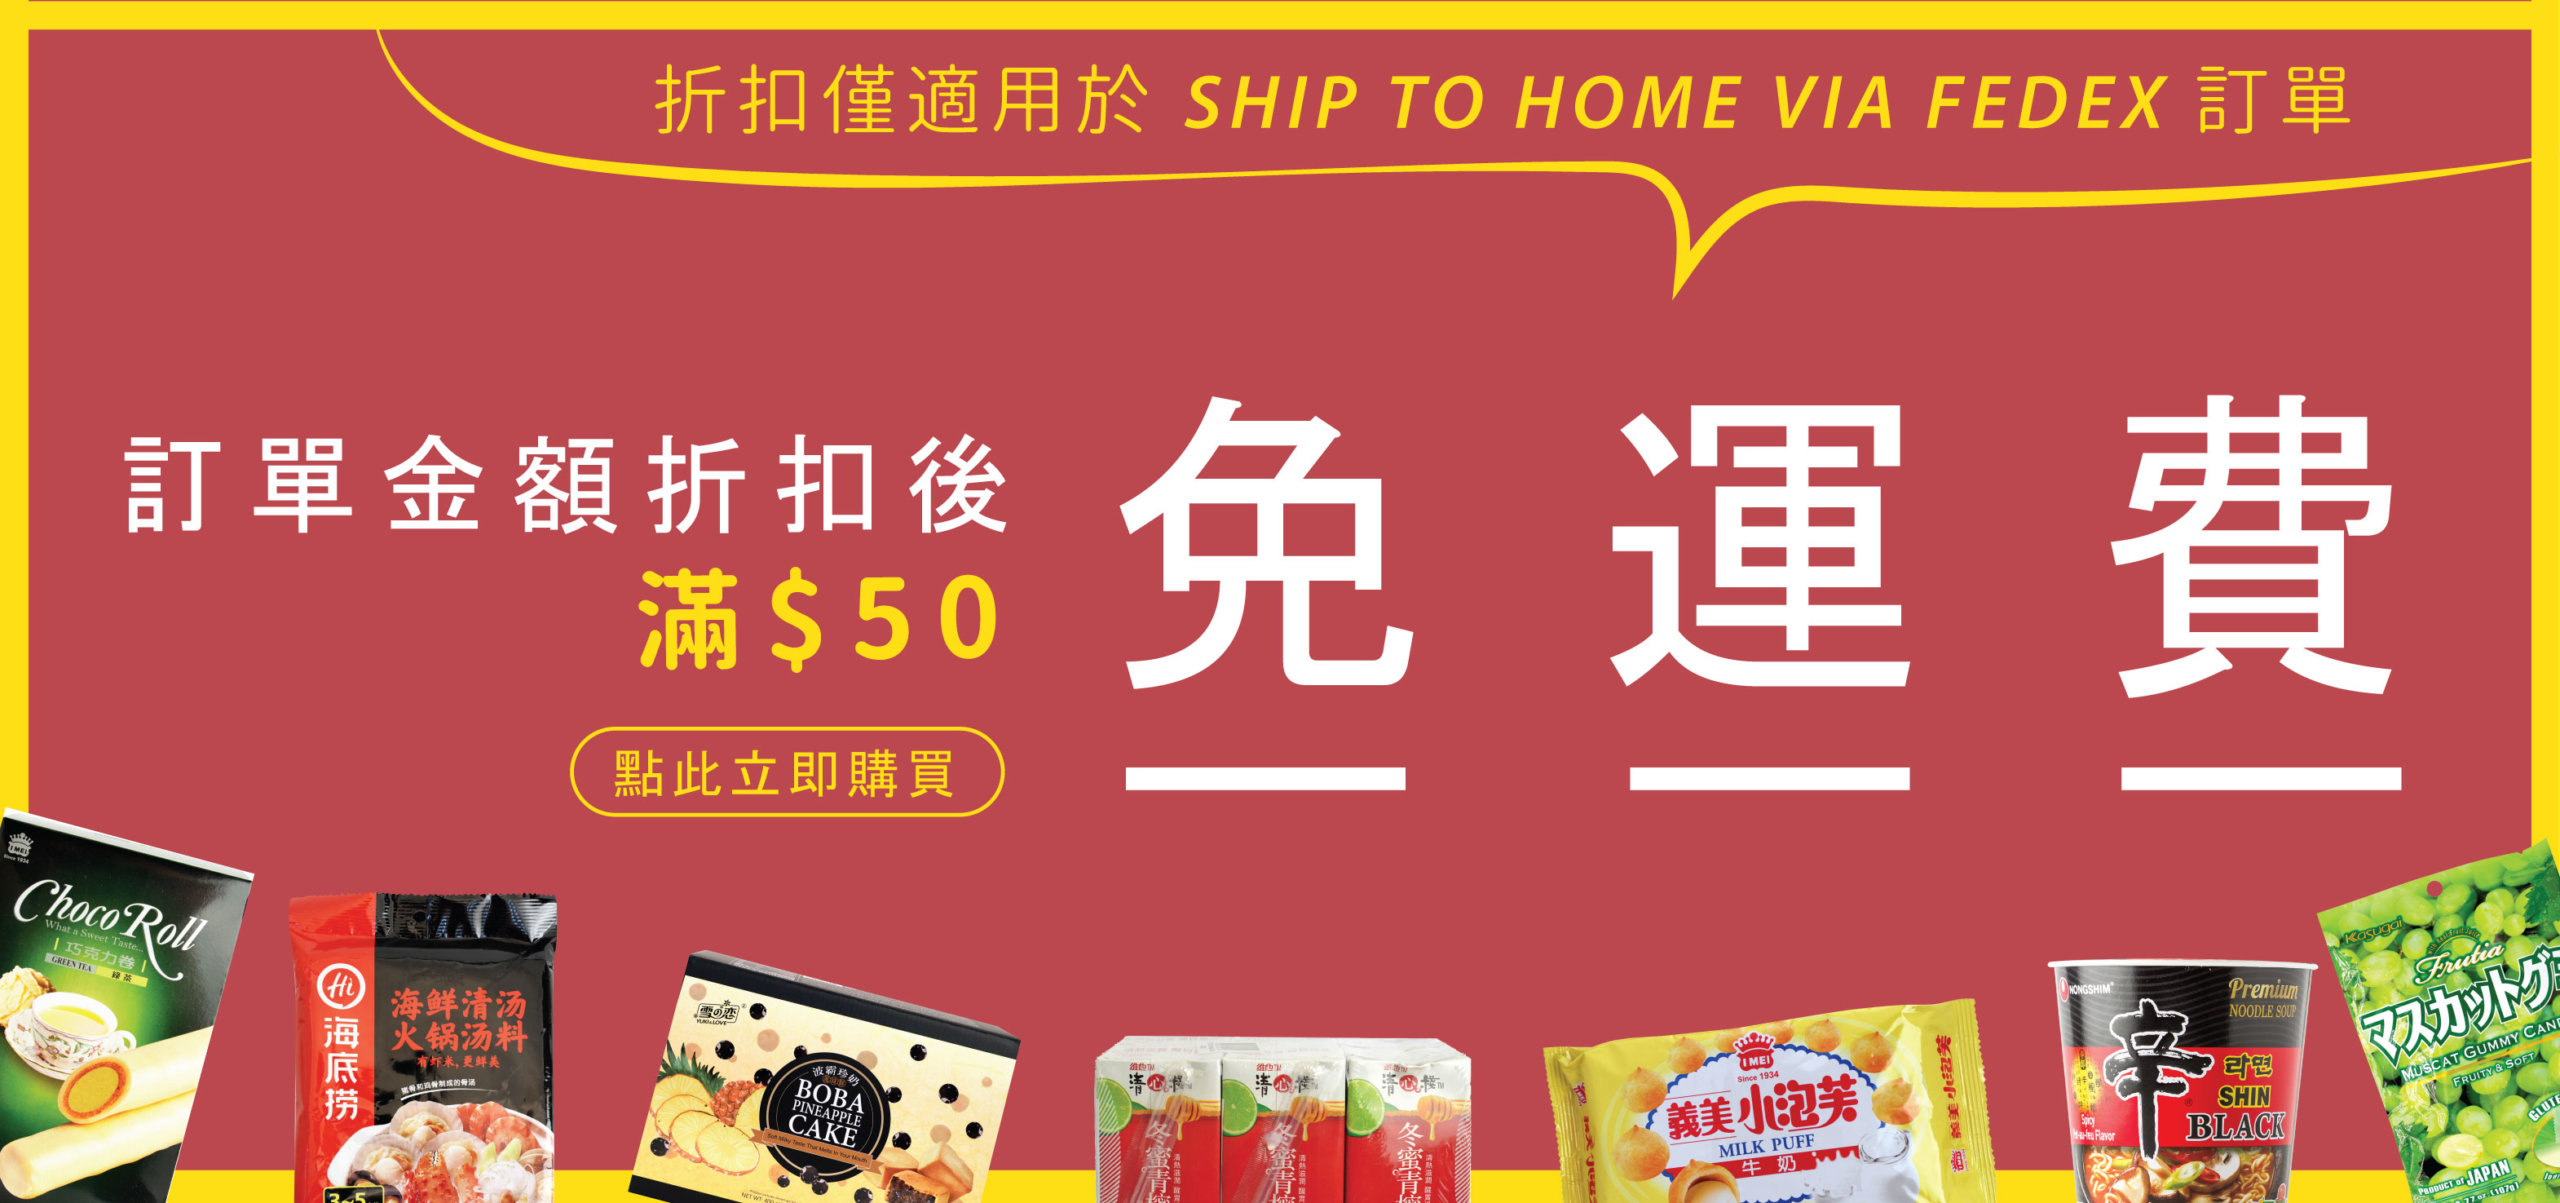 STH-Promotion-Change_chinese